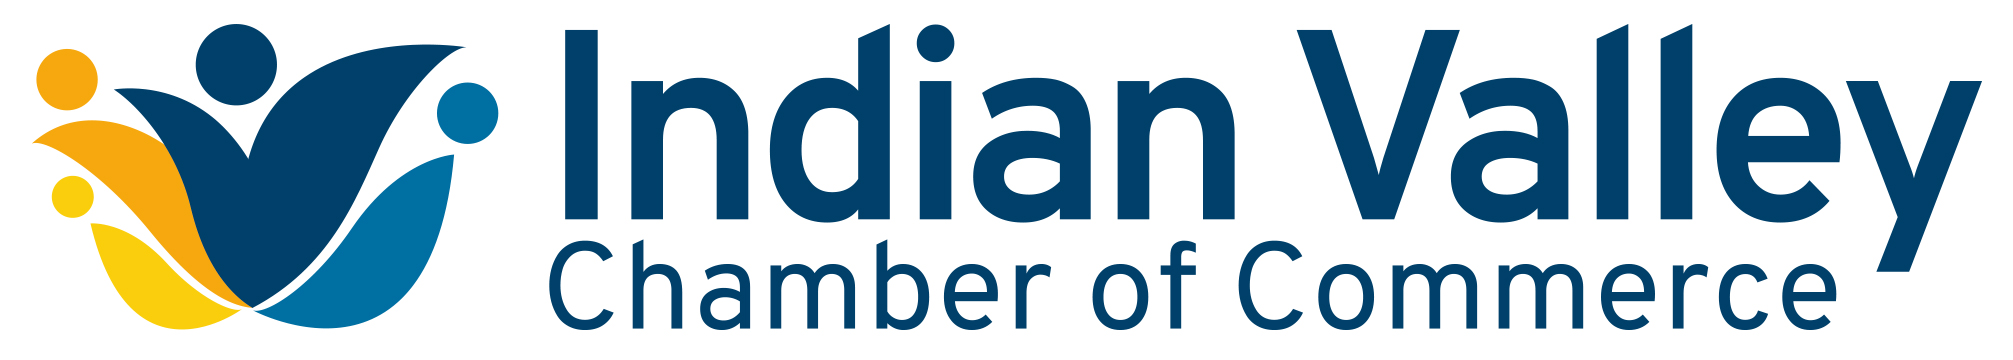 Indian Valley Chamber of Commerce Color Logo